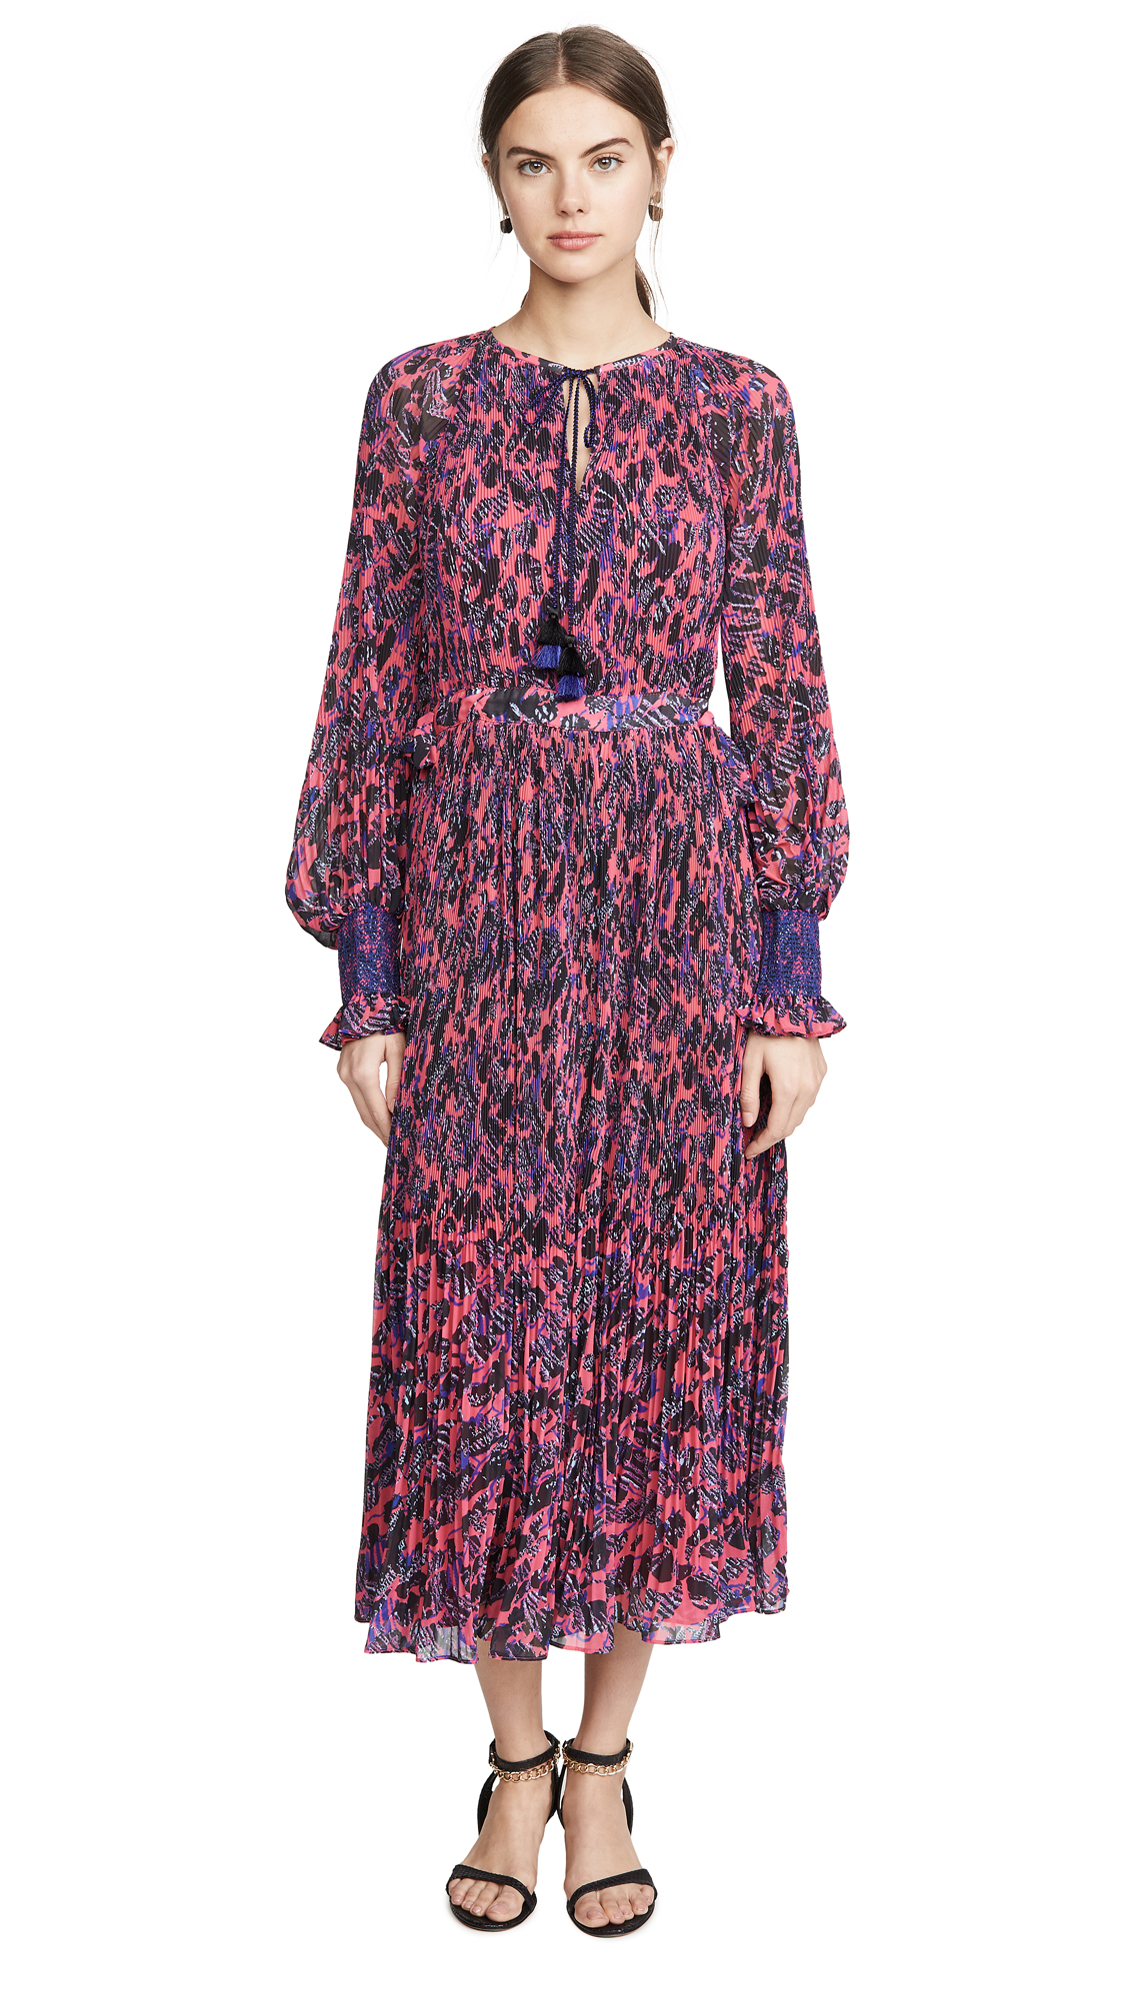 Derek Lam 10 Crosby Nemea Pleated Maxi Dress with Smocking Detail - 40% Off Sale